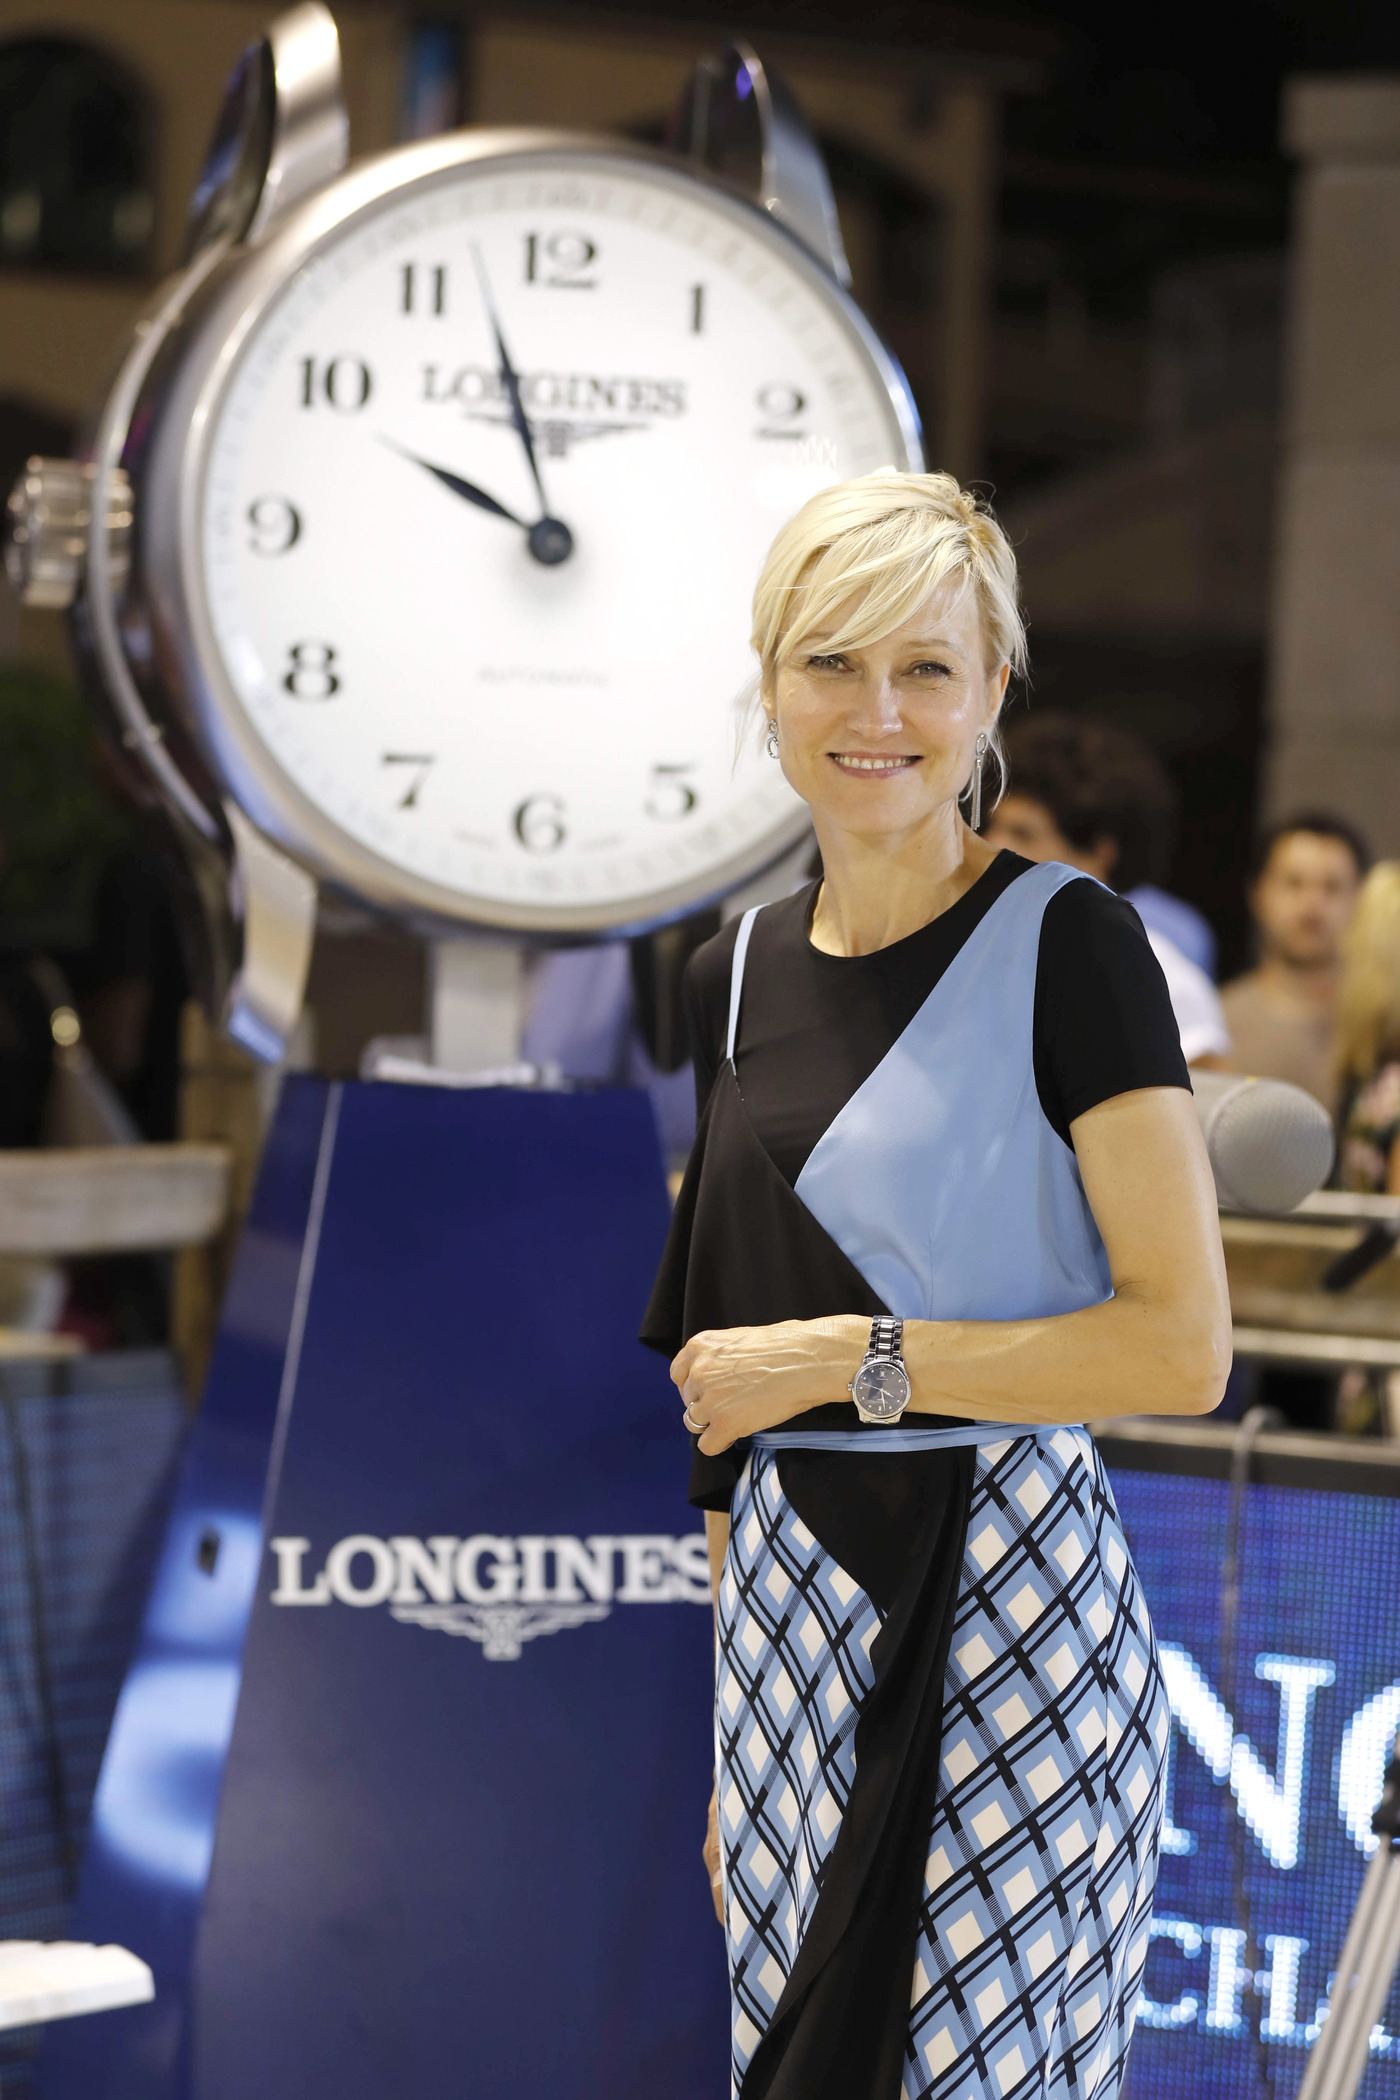 Longines Show Jumping Event: The riders of the Longines Global Champions Tour competed in the magnificent Monaco harbour 2